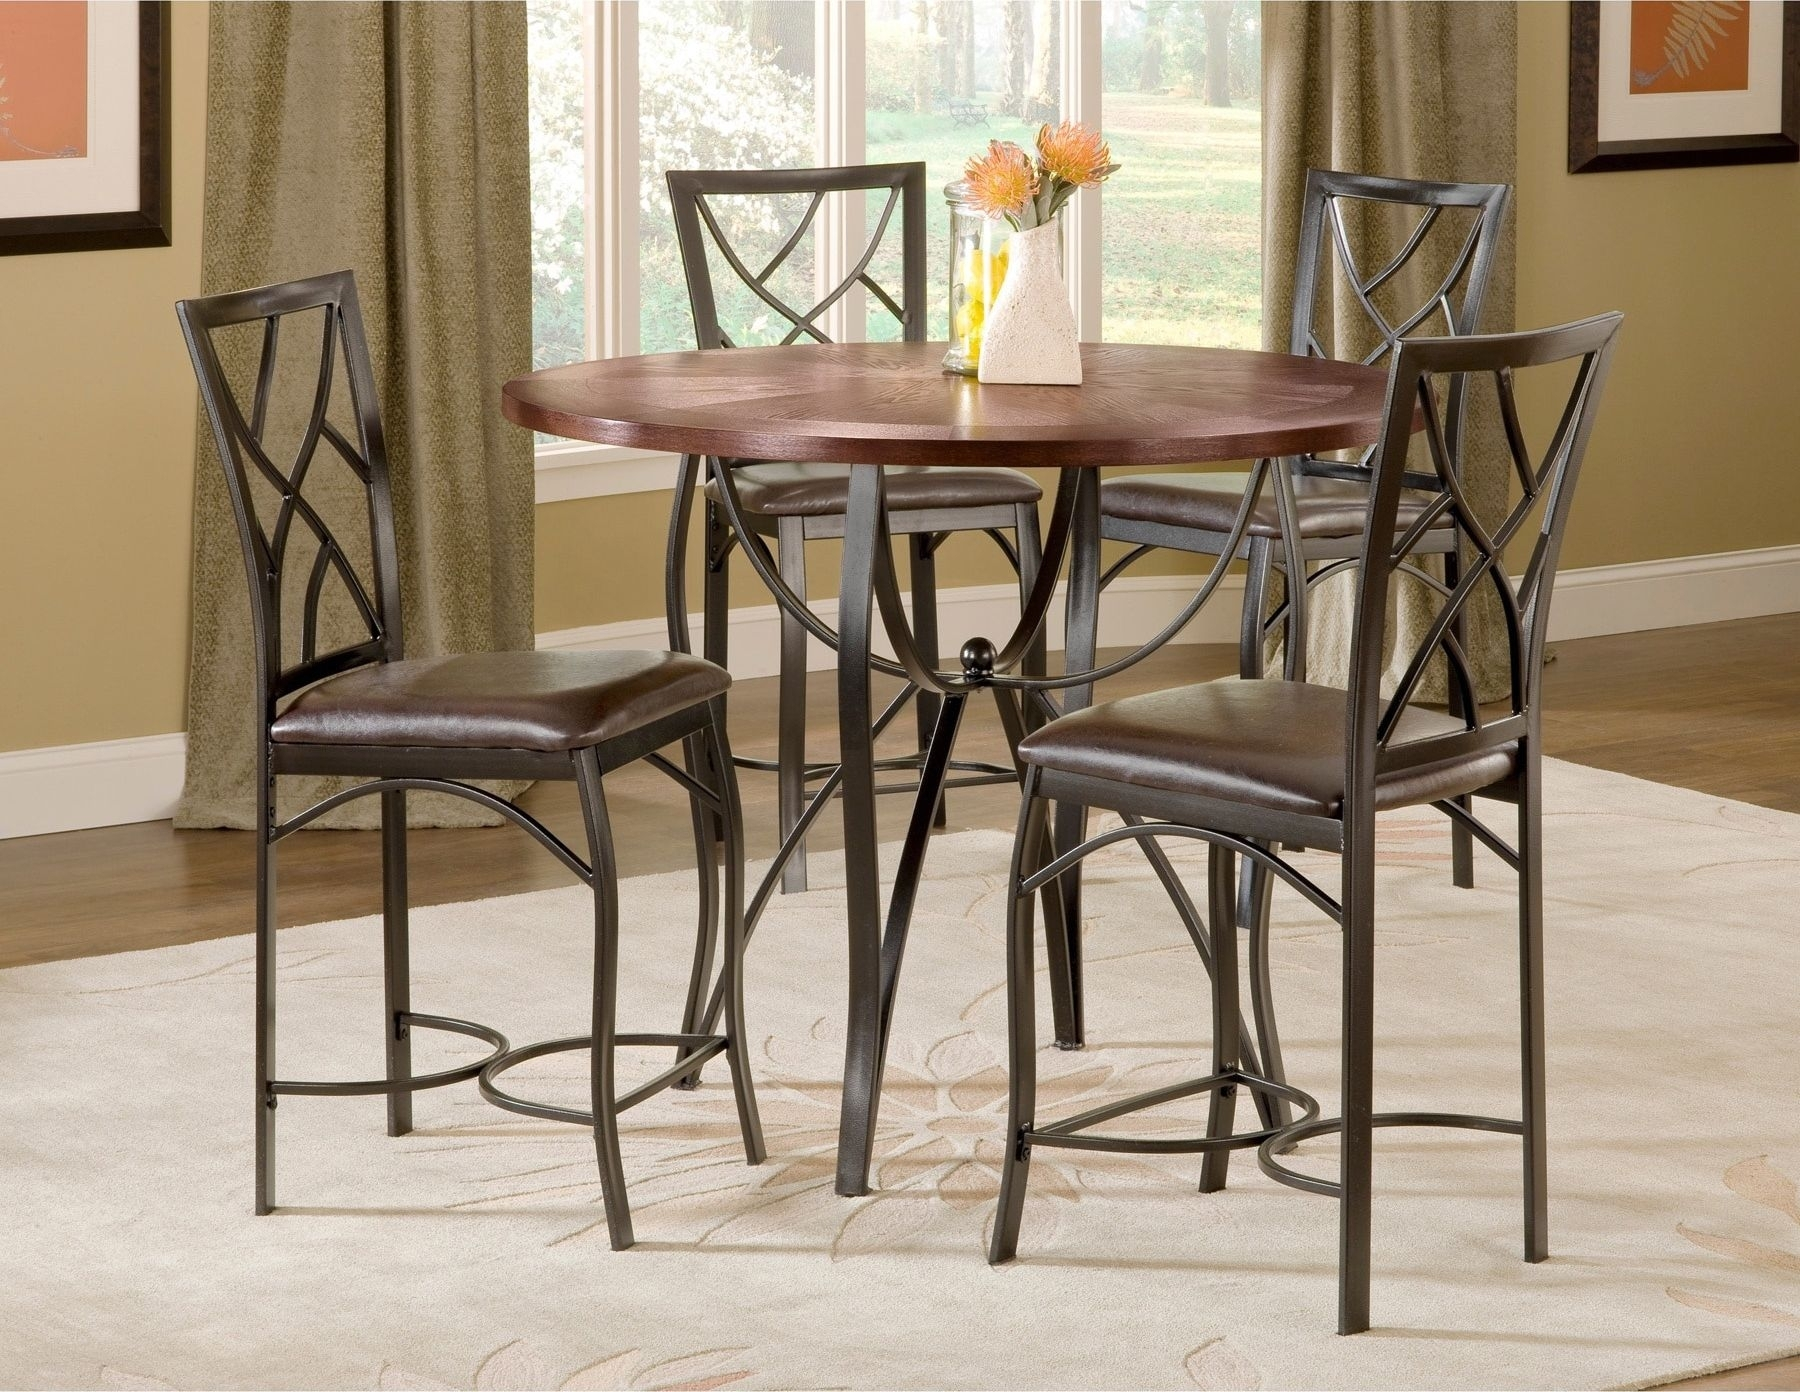 Sanford Merlot 5 Piece Counter Height Table And 4 Chairs Black Metal Throughout Best And Newest Jaxon 5 Piece Extension Counter Sets With Fabric Stools (Image 16 of 20)